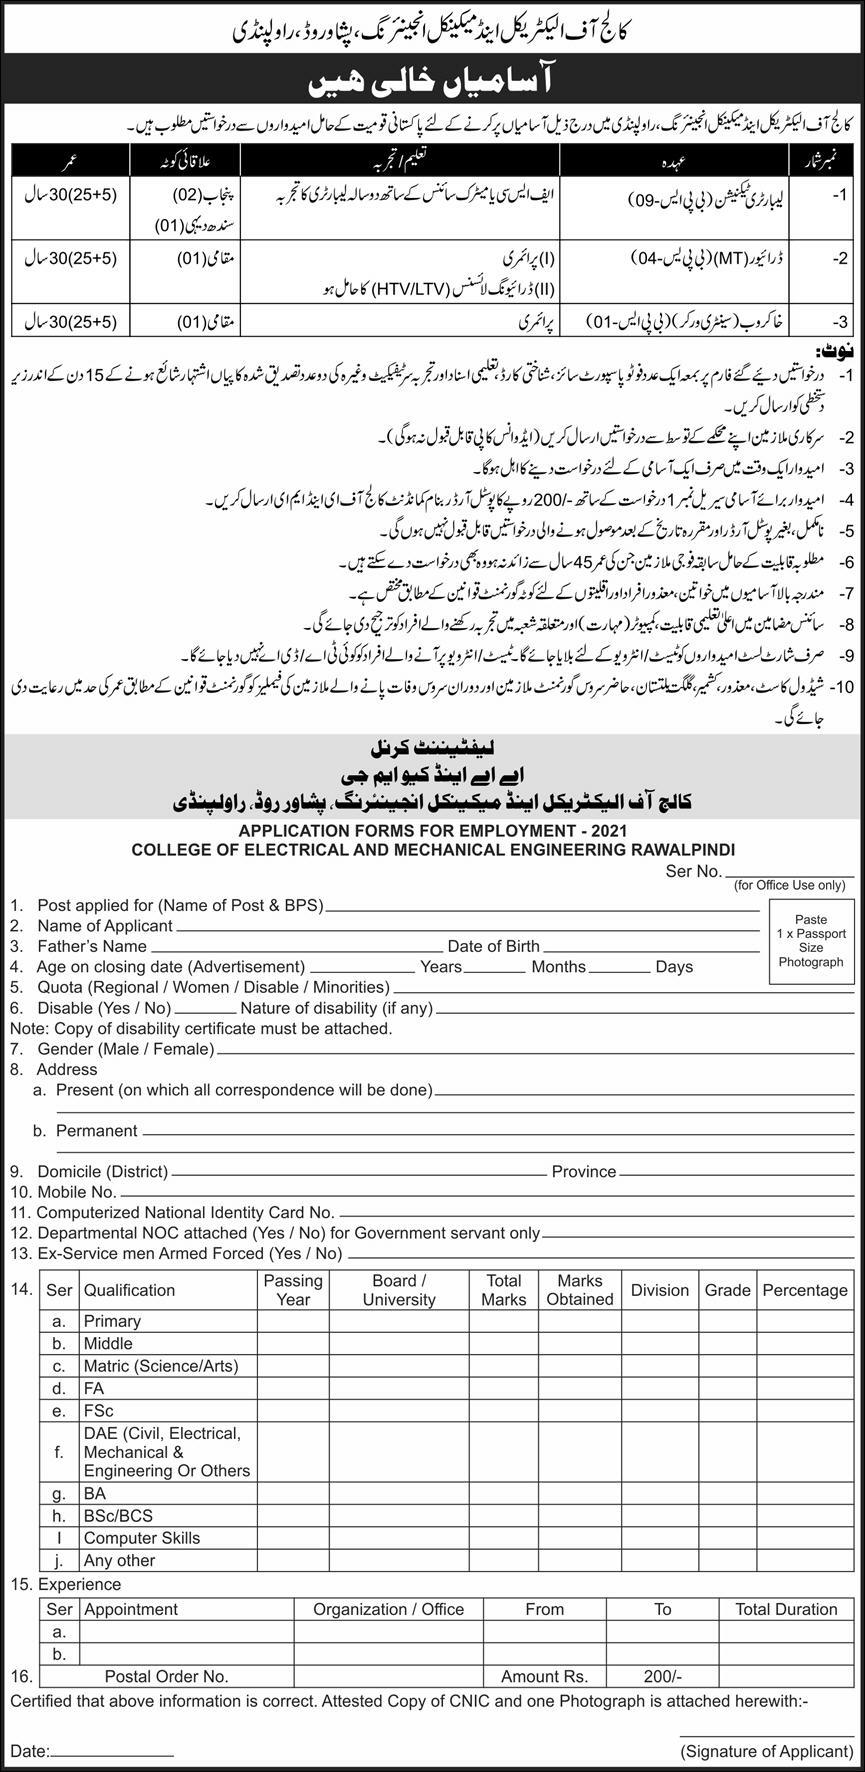 Pak Army College of Electrical and Mechanical Engineering Jobs 2021